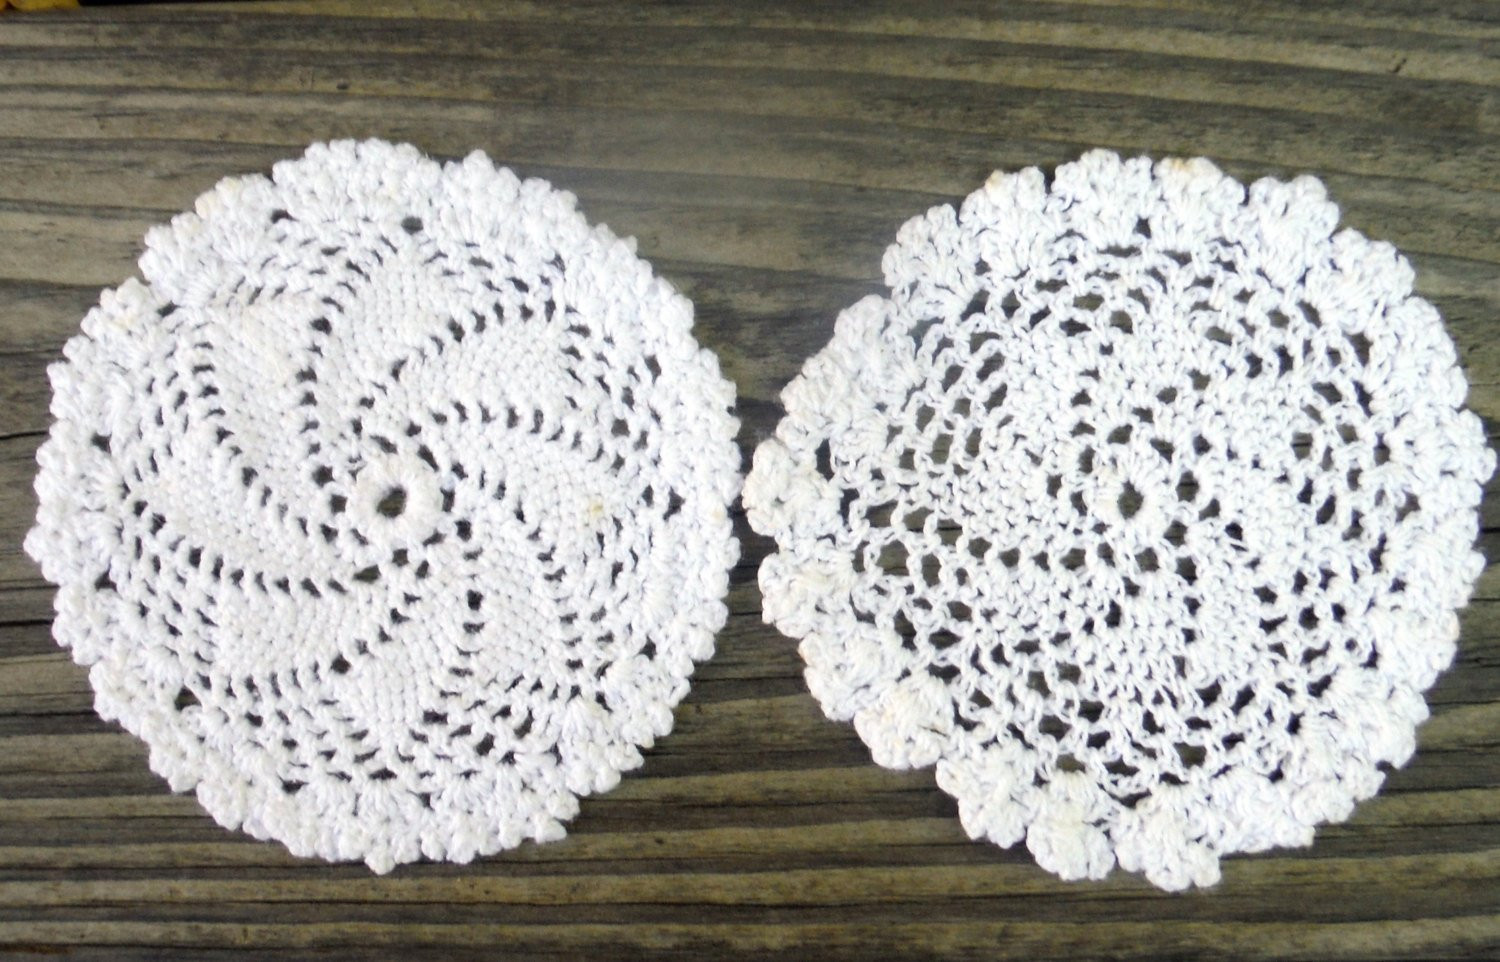 Table Doilies Unique 3 White Crocheted Doilies Diy Doily Art Table Runner Of Attractive 44 Pictures Table Doilies